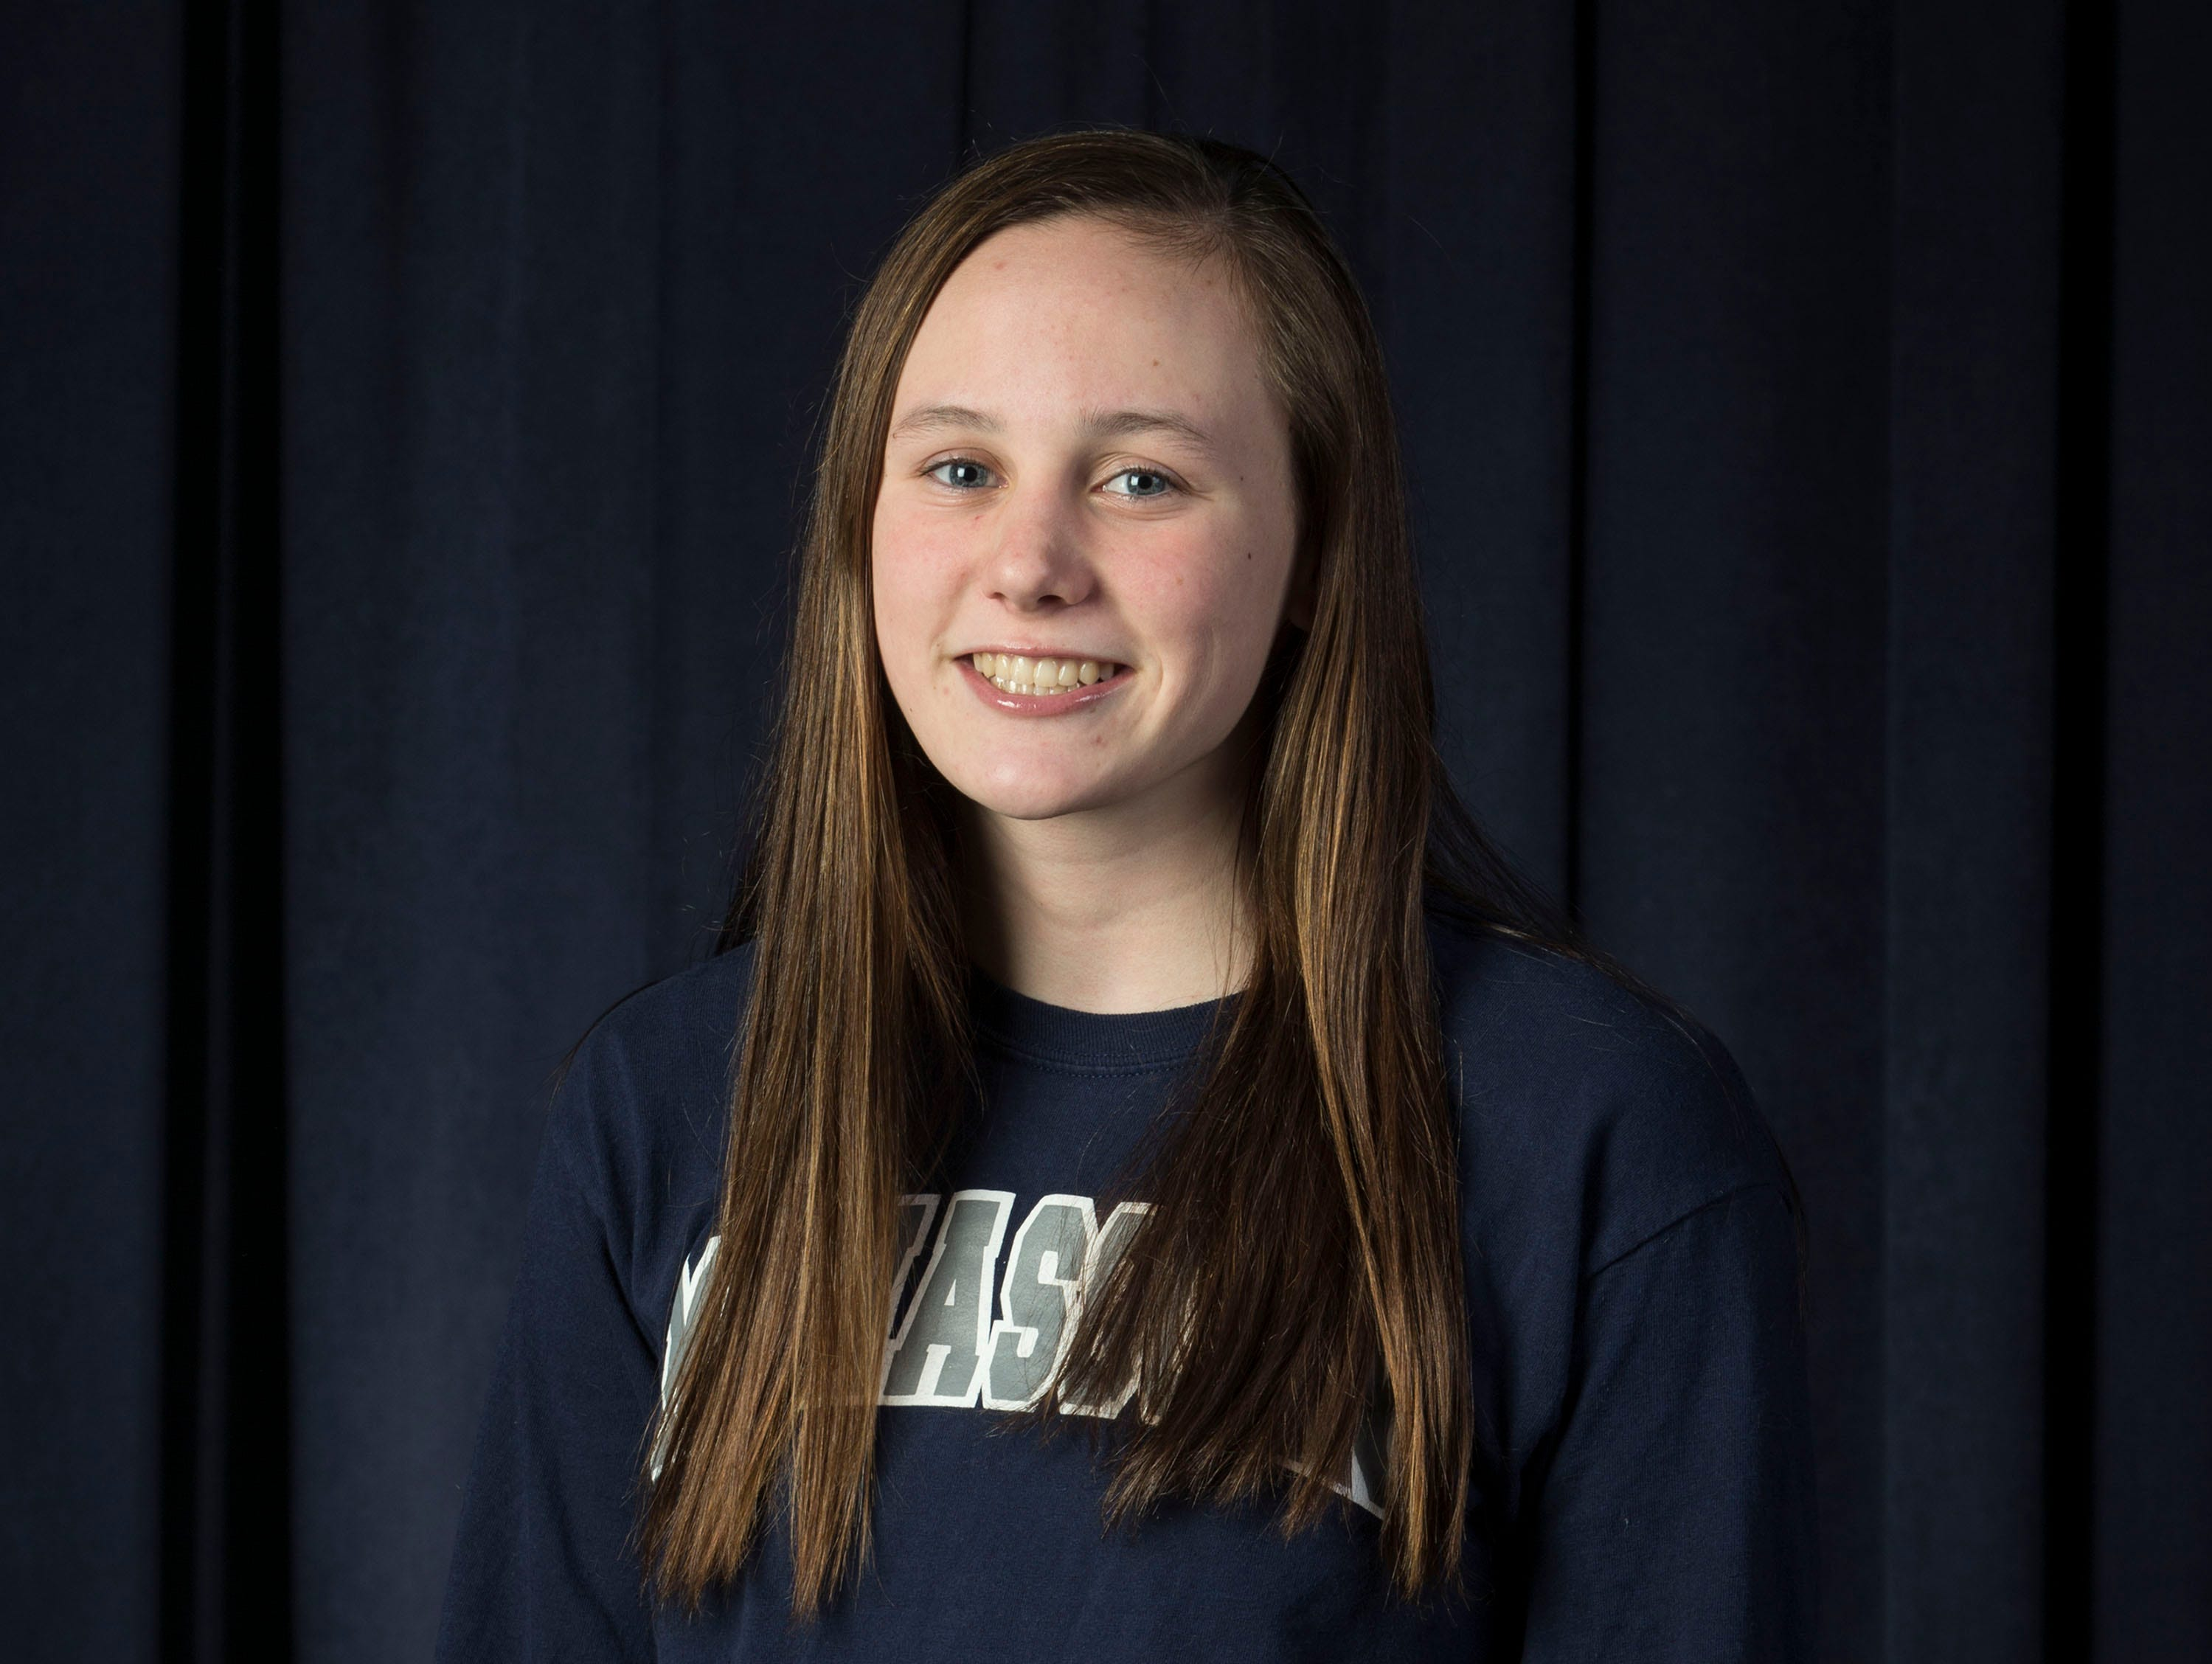 The 2019 All-Shore Girls Swim Team- Sarah Eldridge of Manasquan